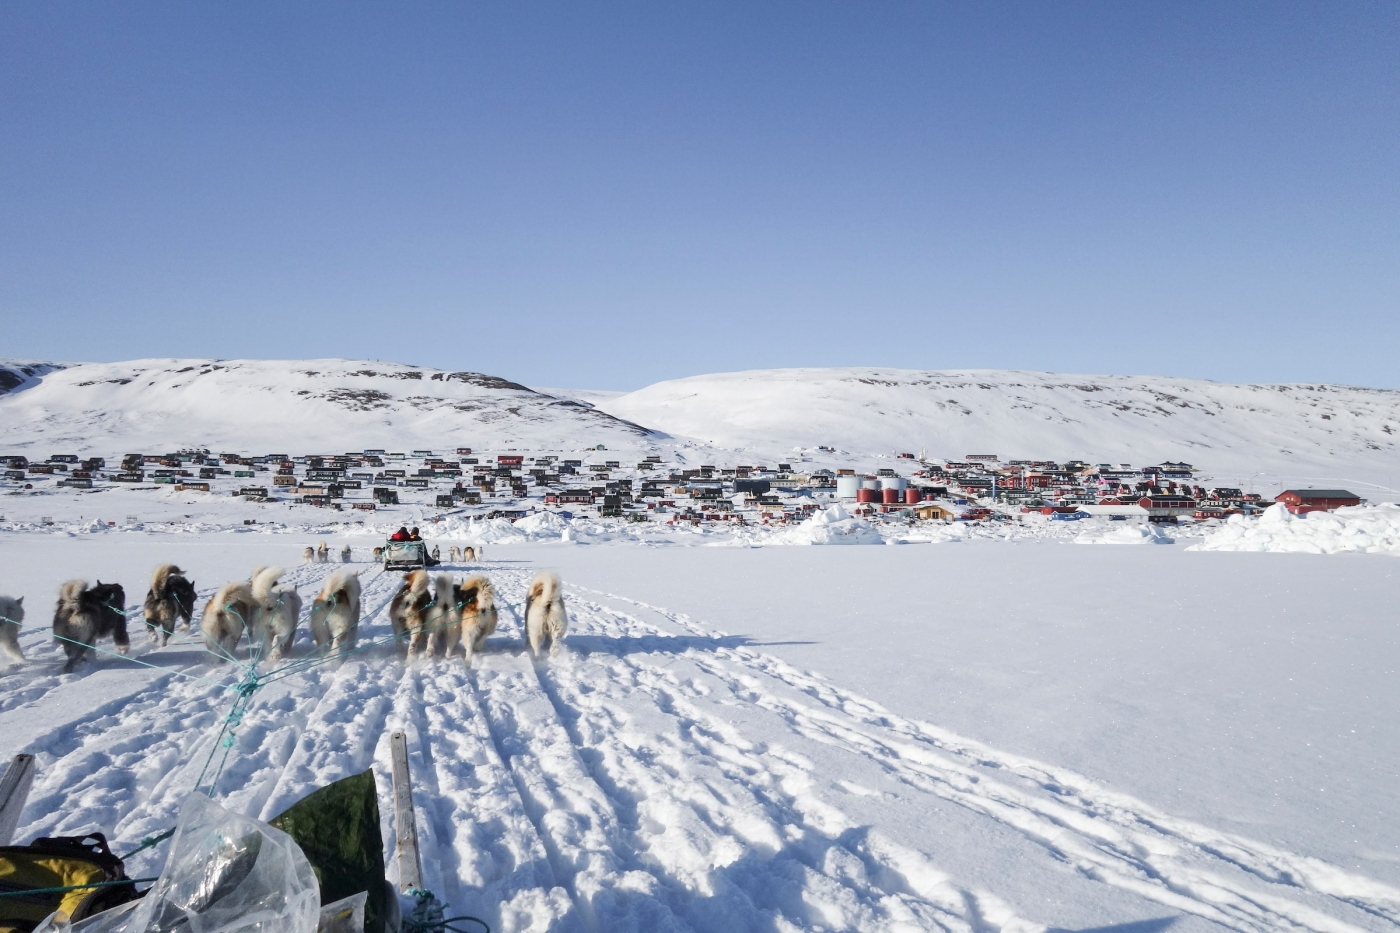 Running Back to Town. Photo by Kim Insuk - Visit Greenland